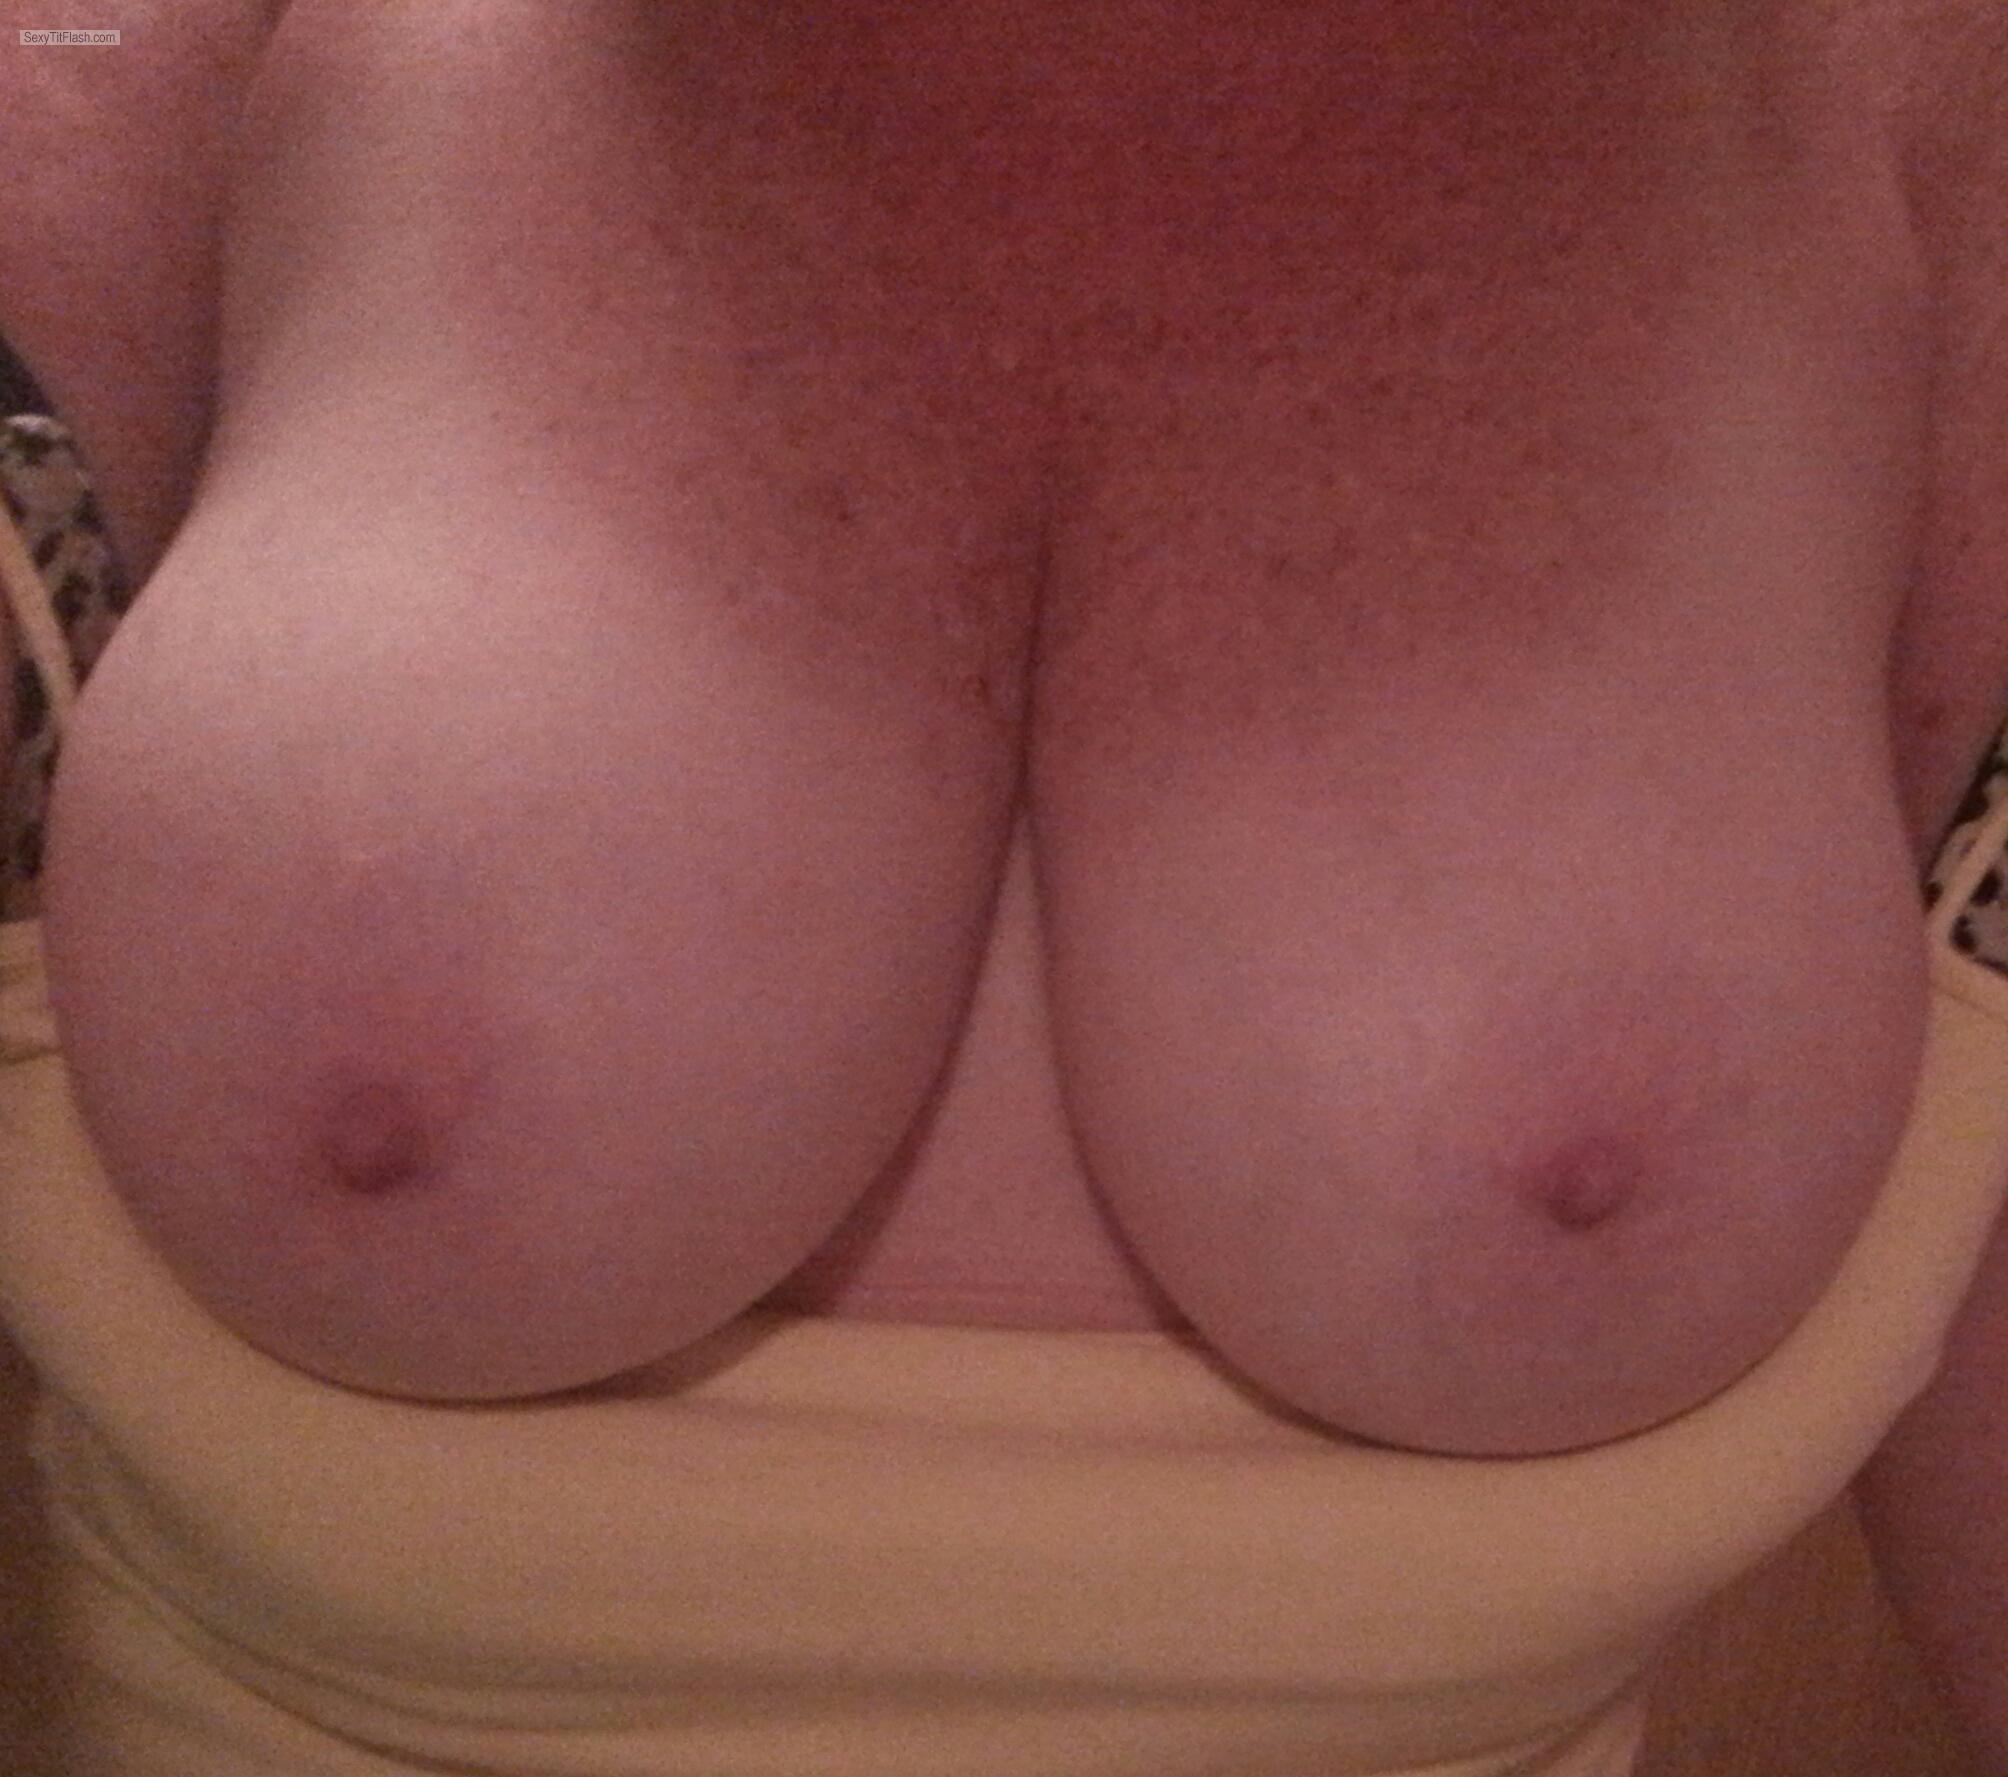 Tit Flash: My Big Tits - Angel from United States